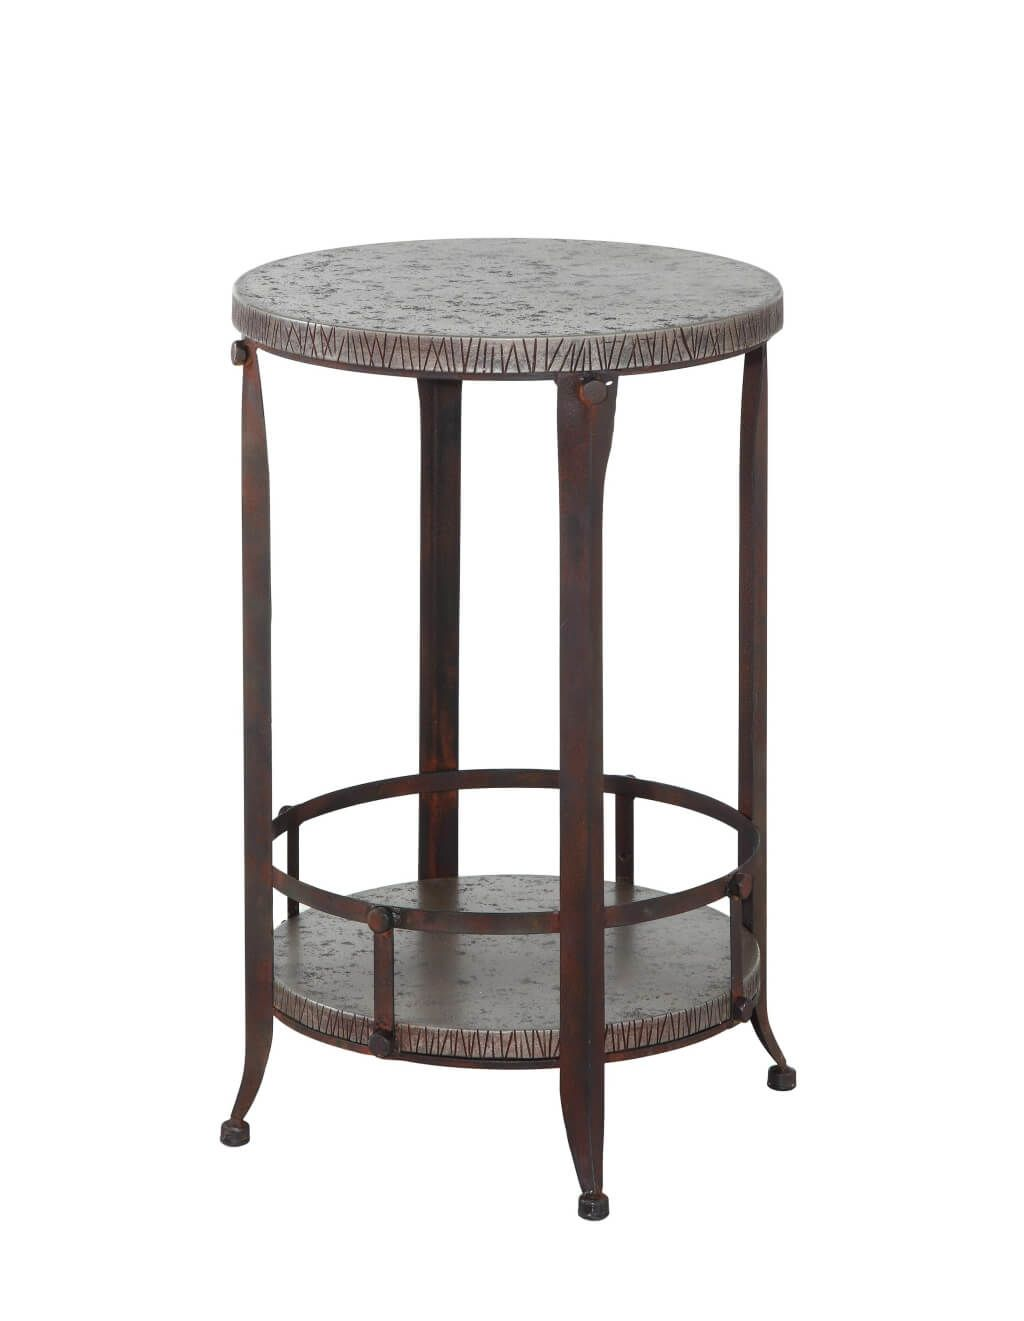 furniture stunning black blair round side table ideas good awesome foundry accent with drawer mahogany benedetta half nautical swag light bronze curtains target gold and marble